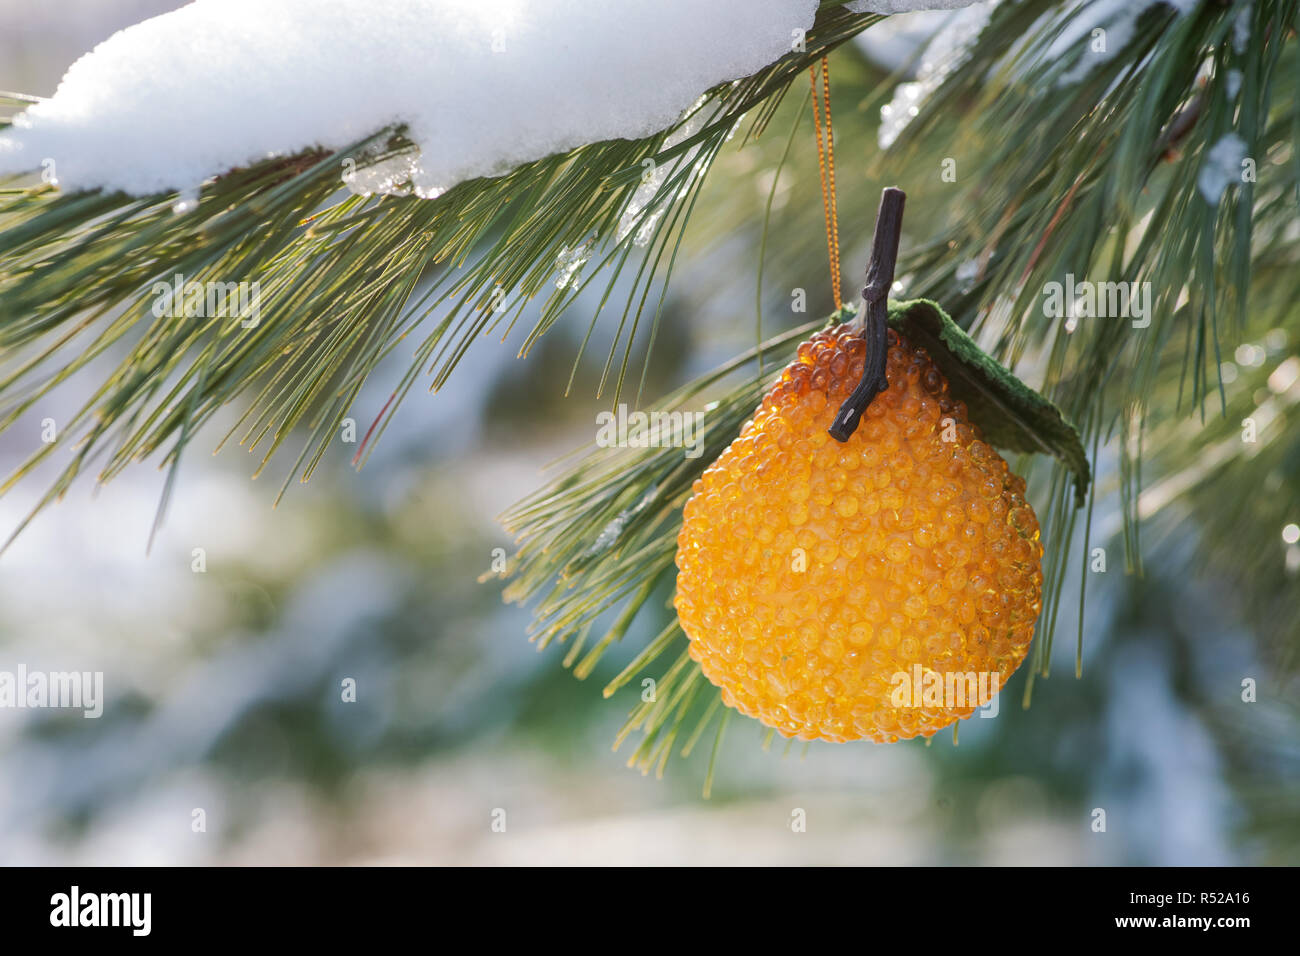 Winter Holiday Concept Decoration In The Form Of Pear In Orange